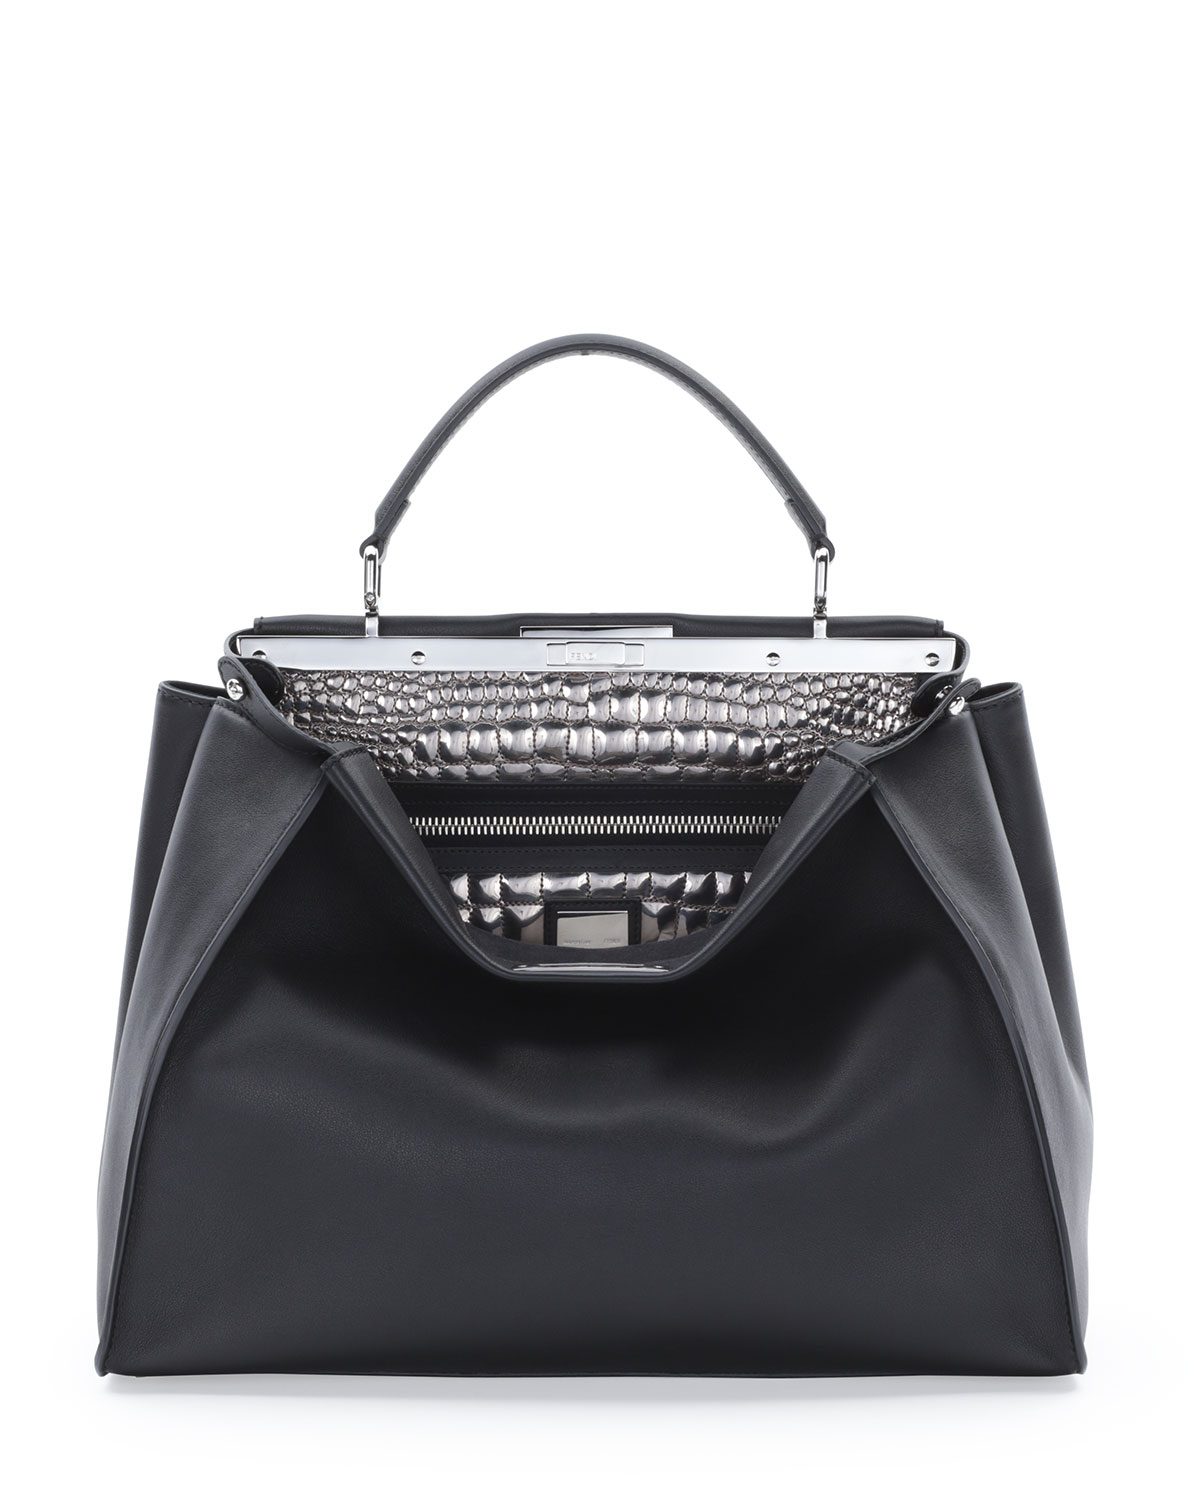 00e57906df Lyst - Fendi Peekaboo Large Croc-Stitched Satchel Bag in Black